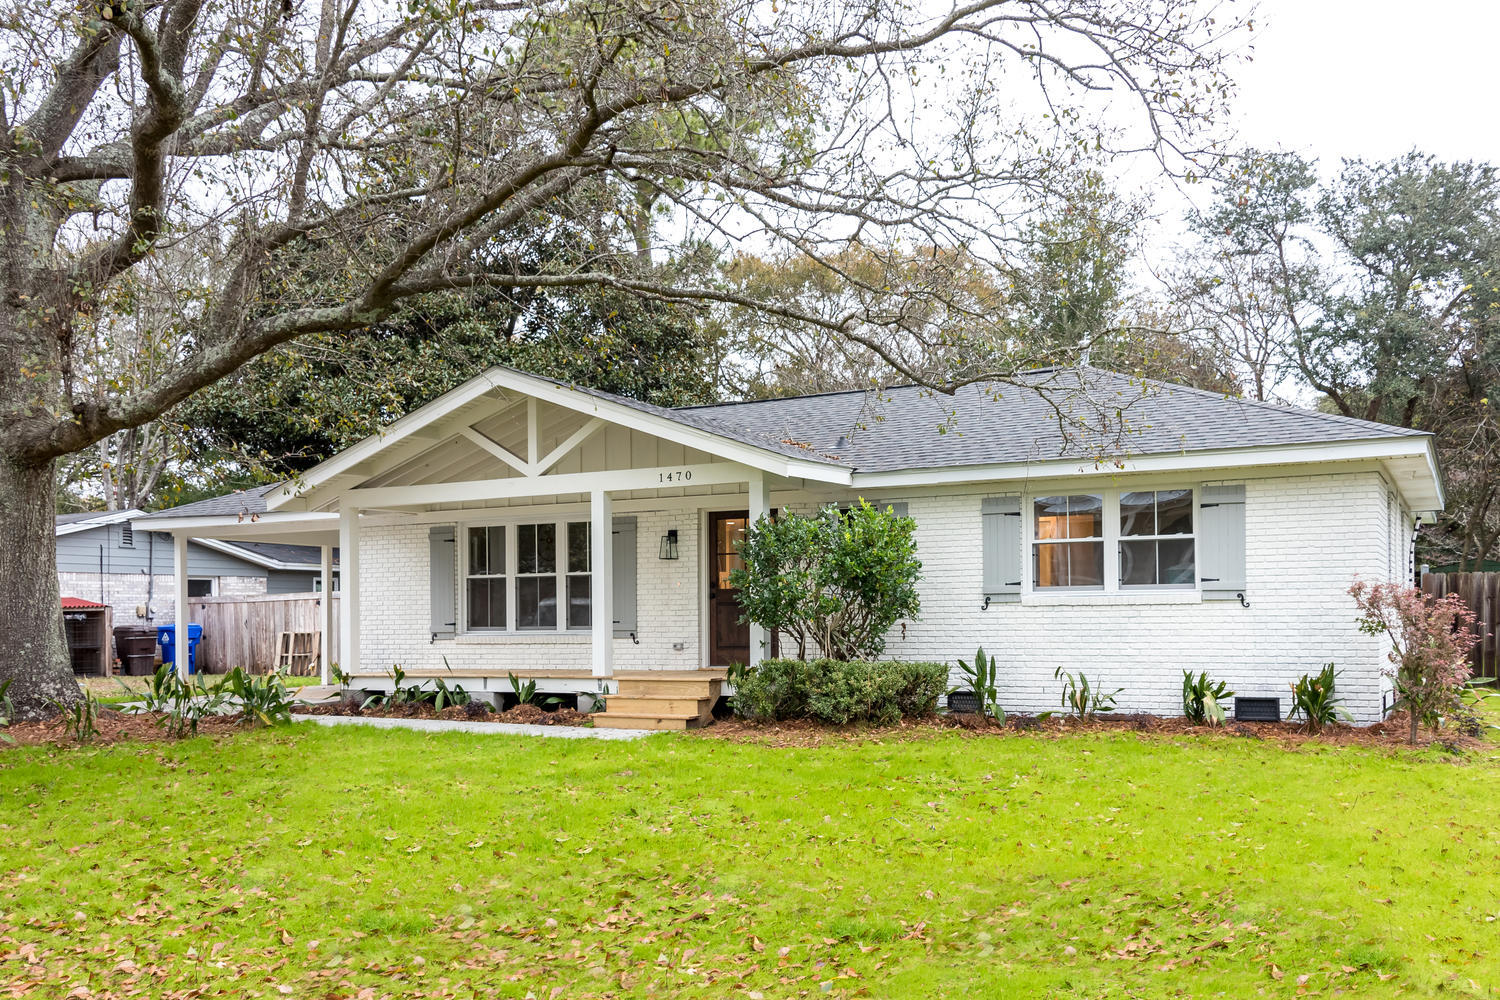 Old Mt Pleasant Homes For Sale - 1470 Mataoka, Mount Pleasant, SC - 1